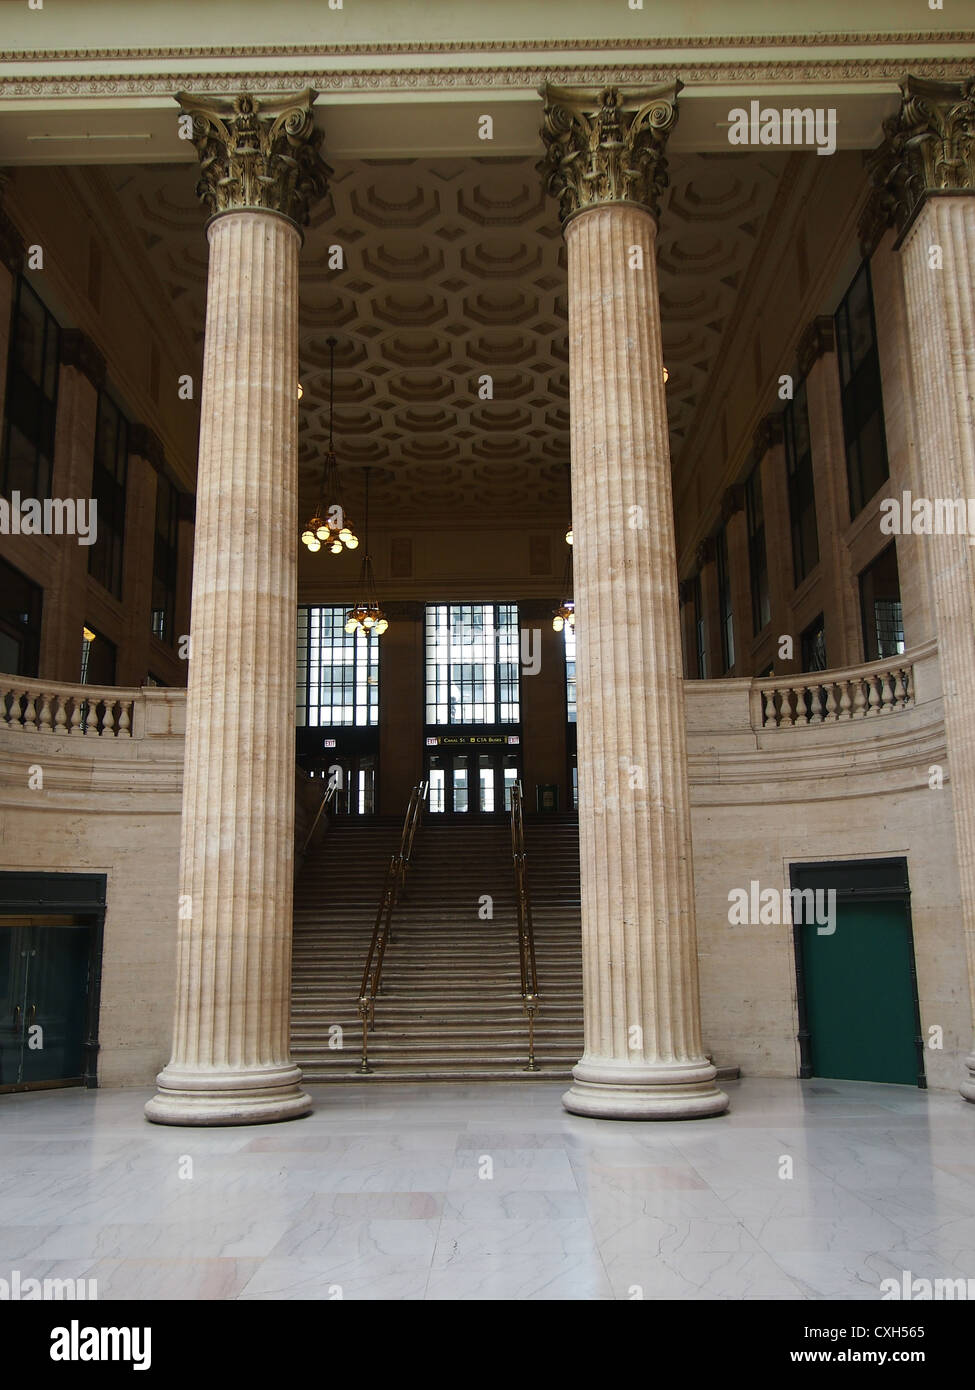 Interior View of Union Station, Chicago, Showing Staircase Used In The Film 'The Untouchables' with Pillars In Foreground Stock Photo